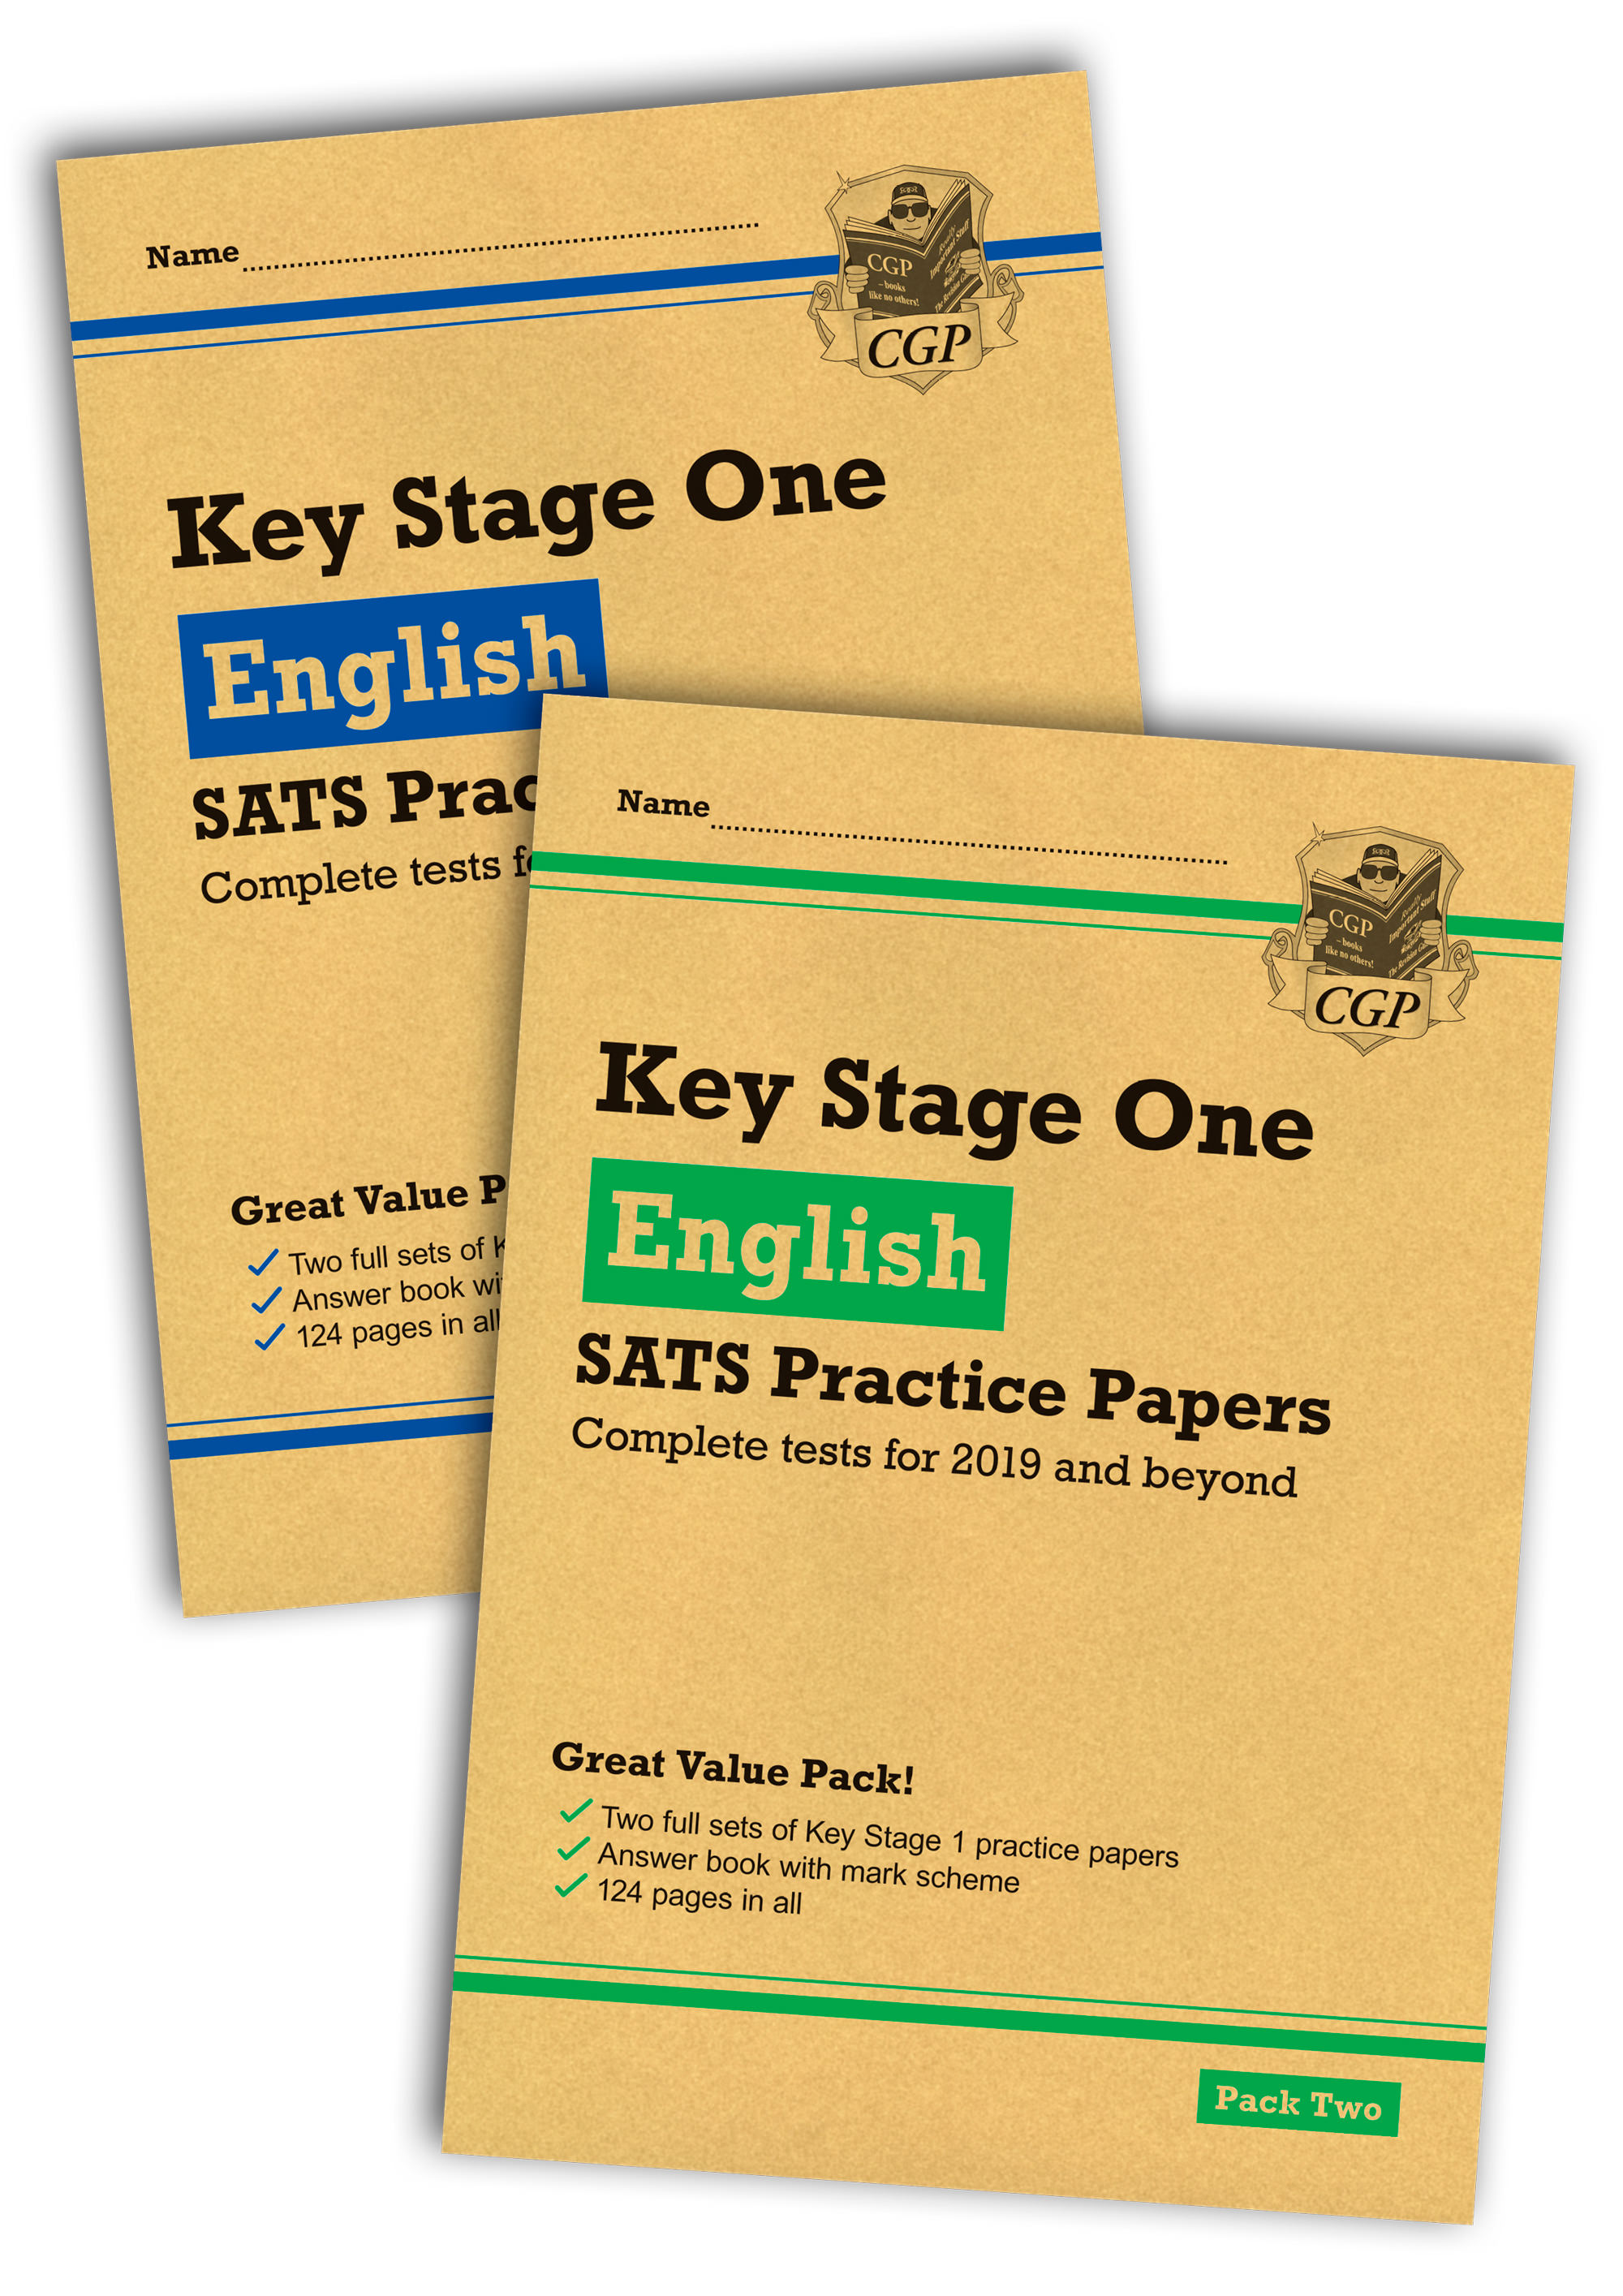 EHB2P13 - New KS1 English SATS Practice Paper Bundle: Pack 1 & 2 (for the 2019 tests)